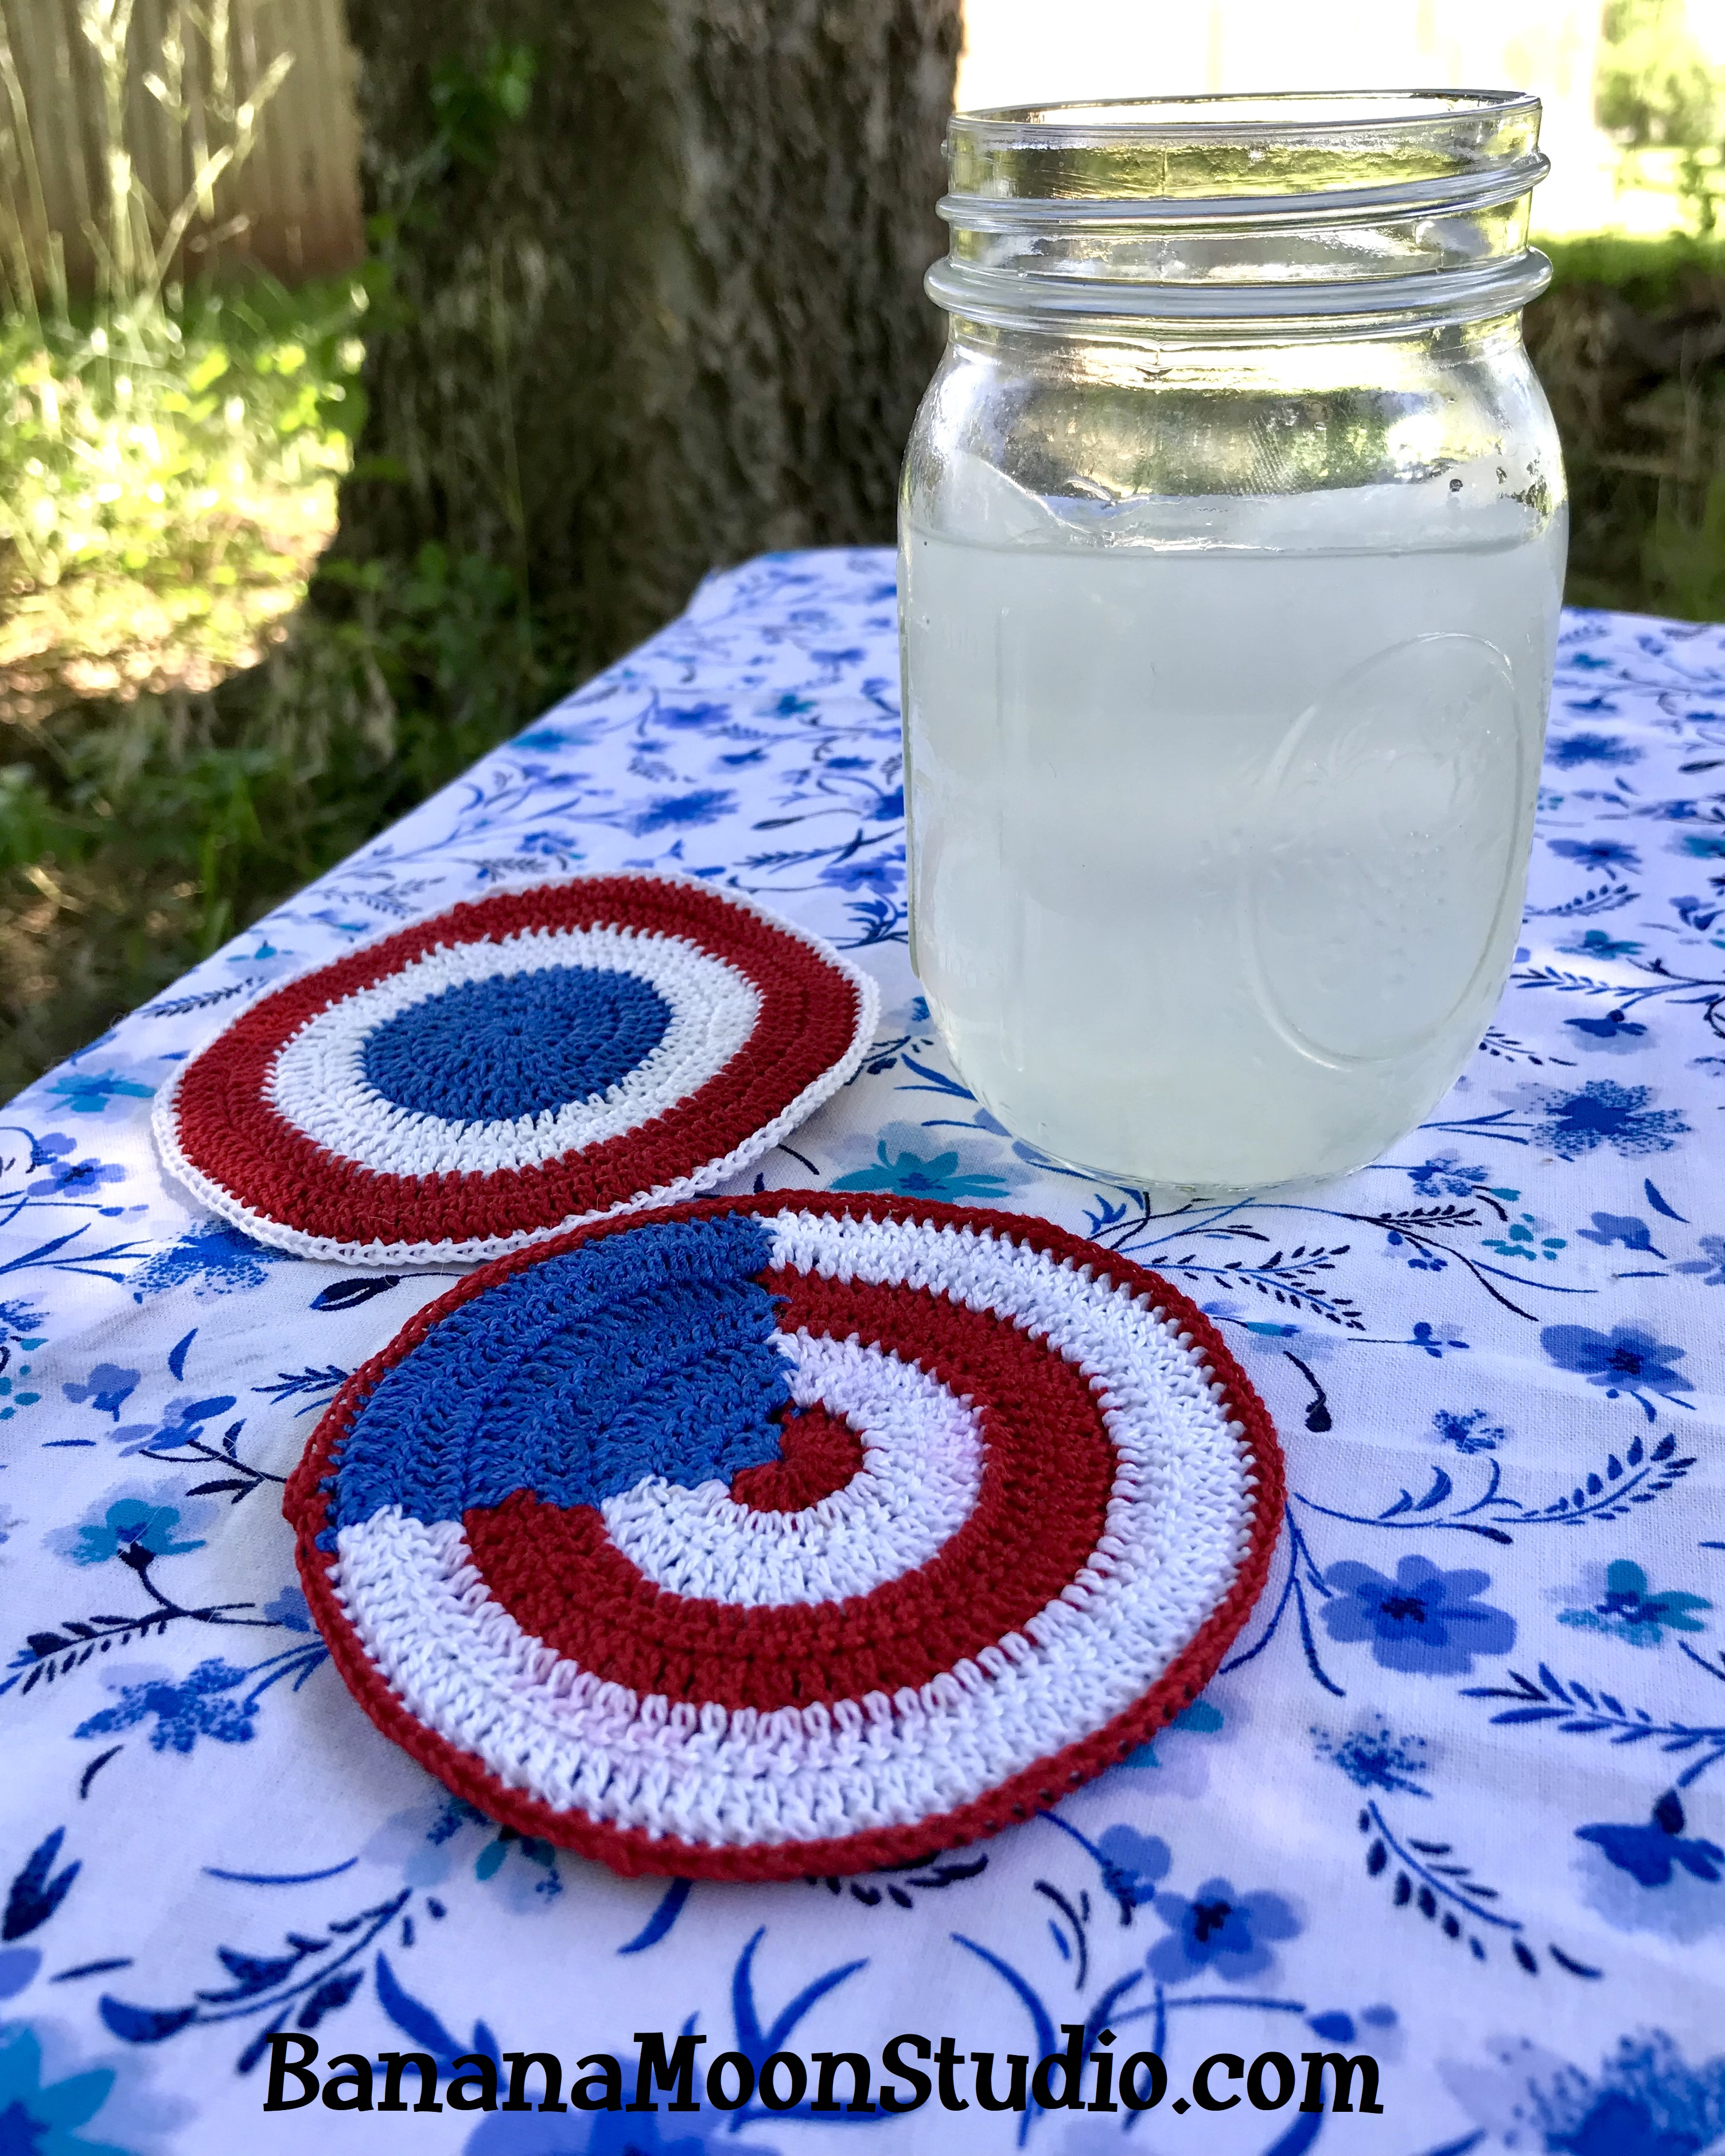 Crochet pattern, 4th of July coasters, Independence Day. Banana Moon Studio